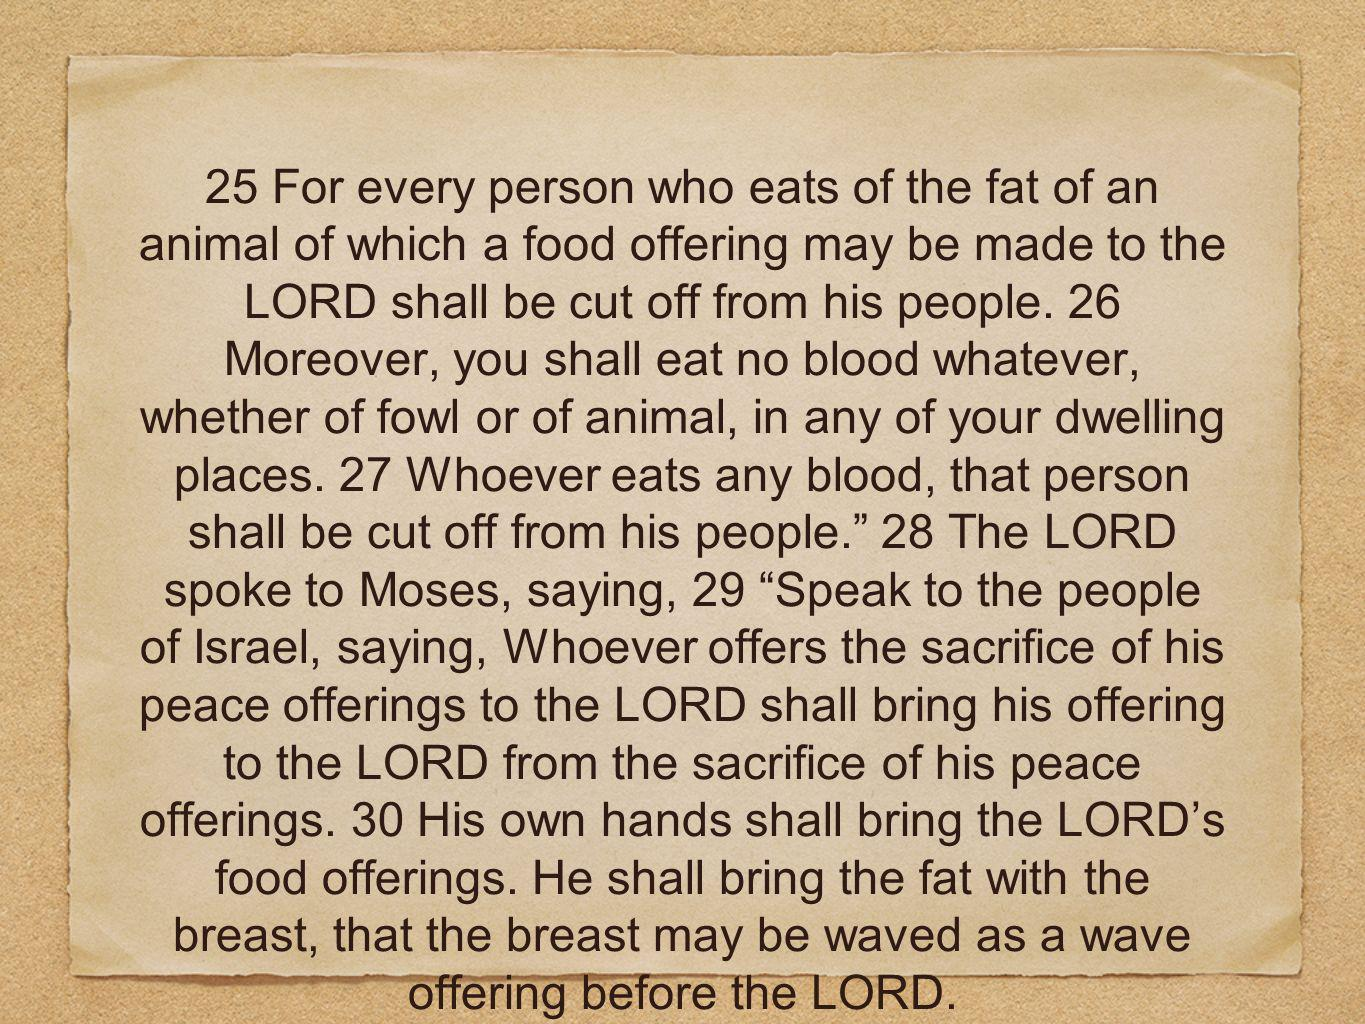 25 For every person who eats of the fat of an animal of which a food offering may be made to the LORD shall be cut off from his people.